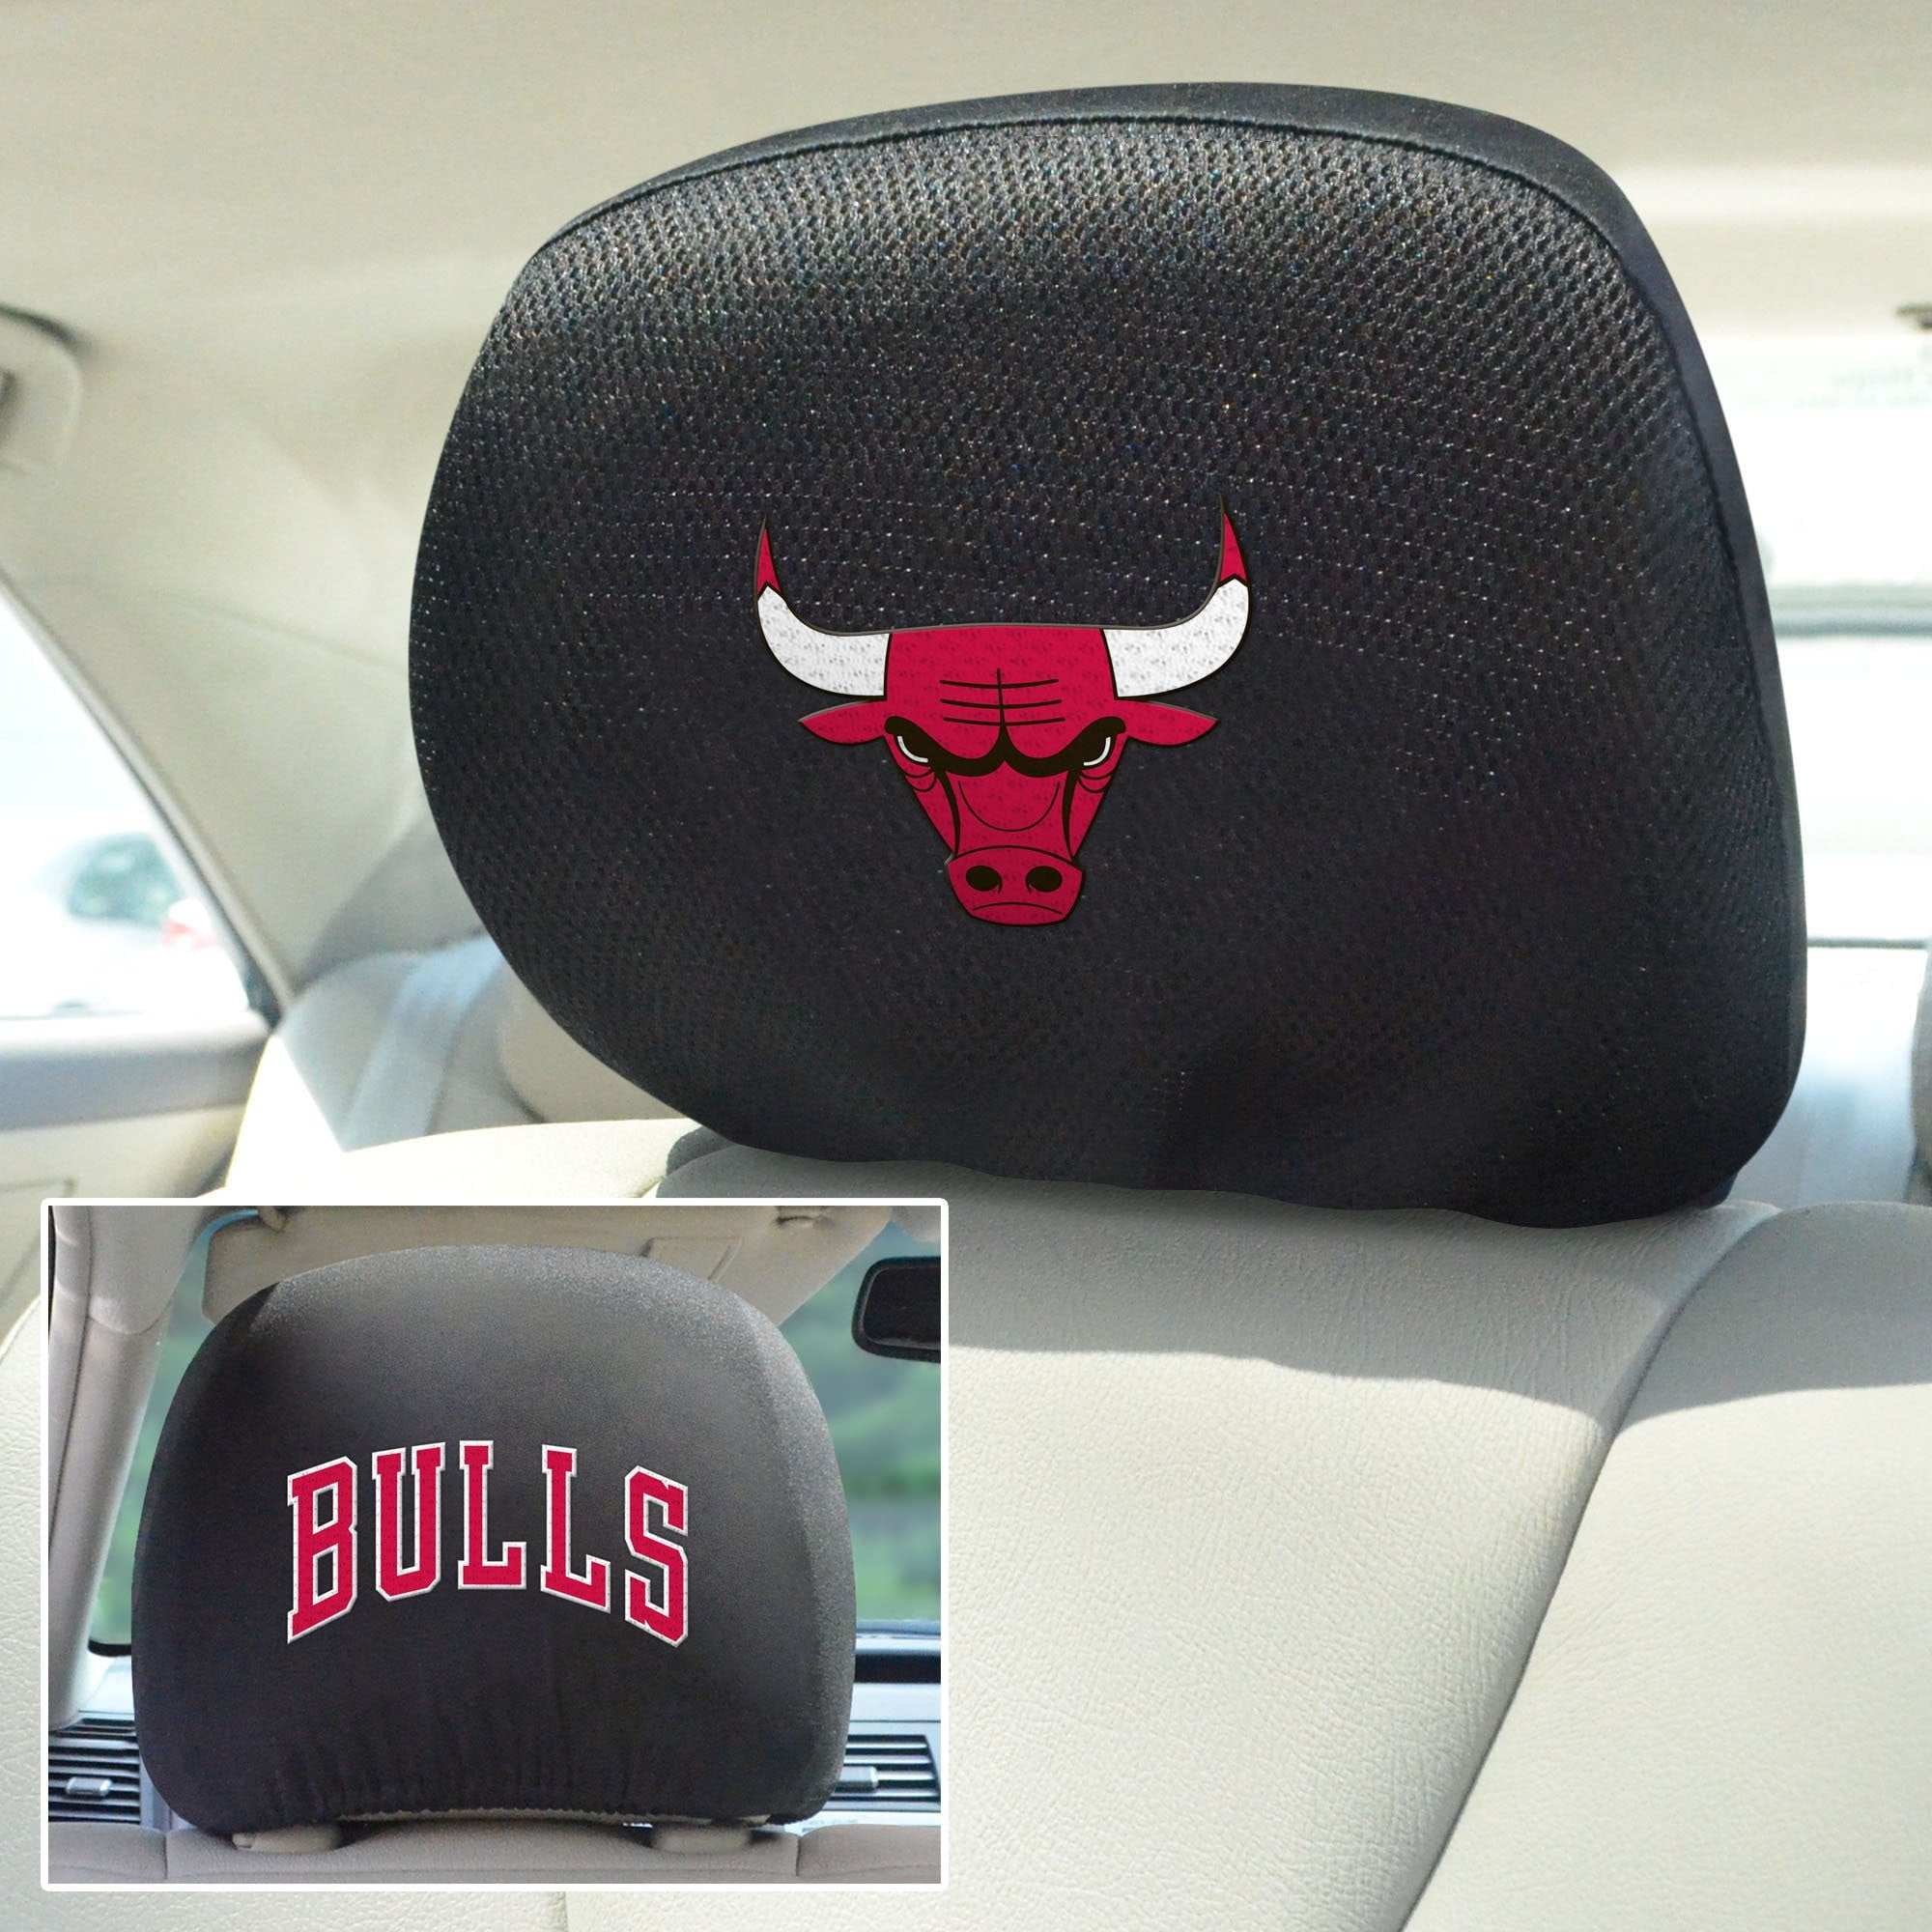 NBA - Chicago Bulls Set of Set of 2 Headrest Covers